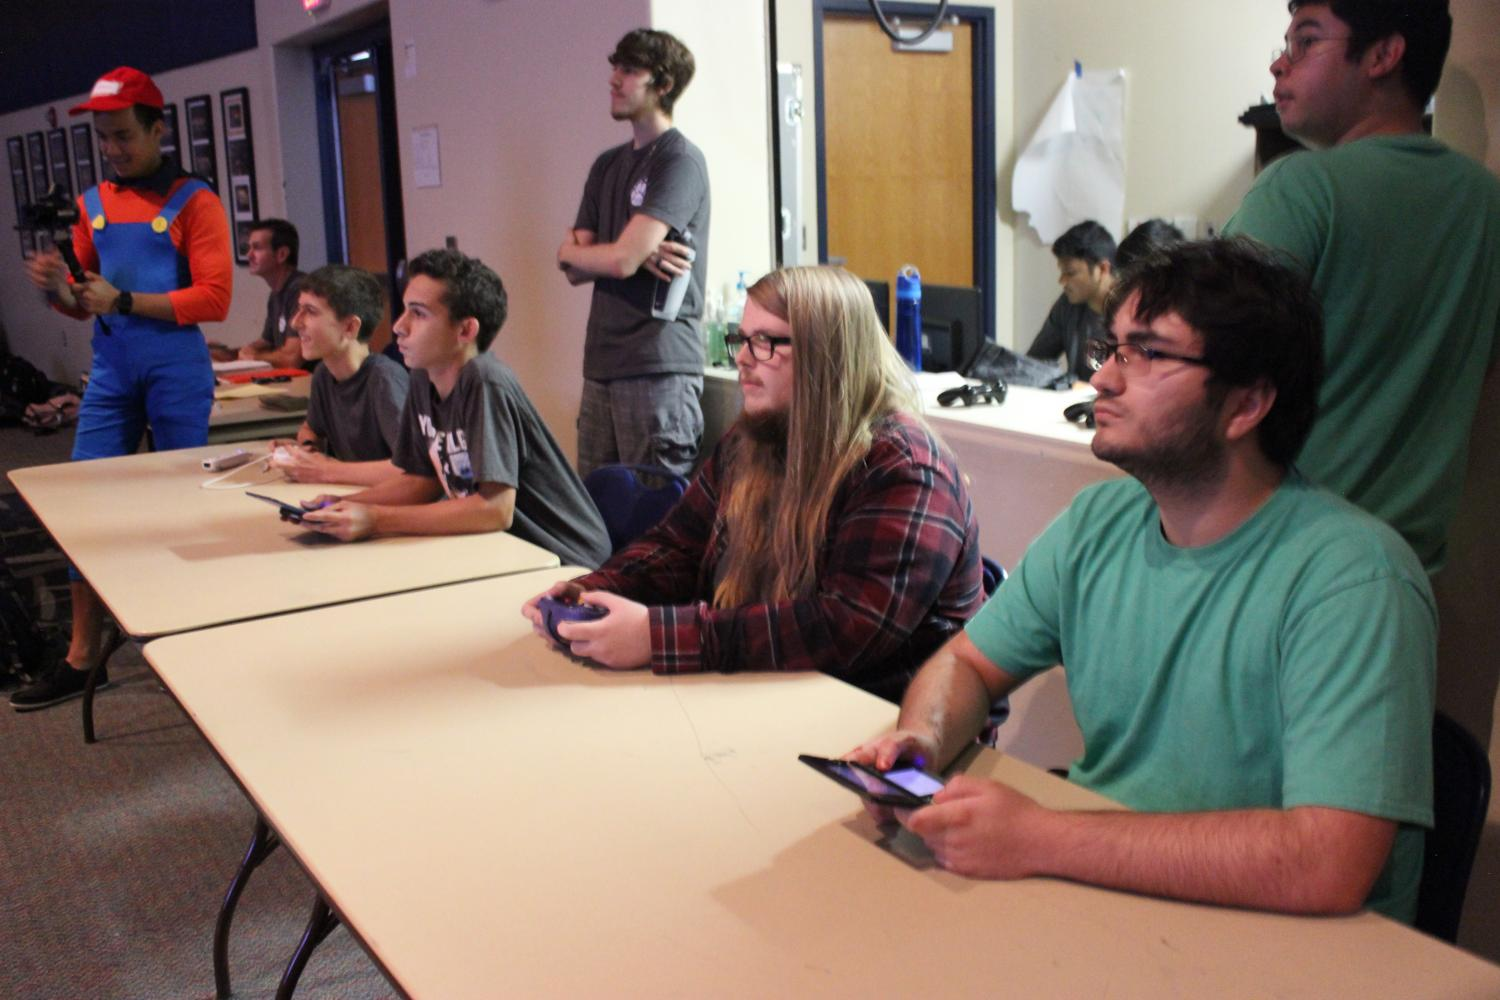 Seniors Sebastian Rivera and Avery East join as a team in the Smash Brothers tournament.